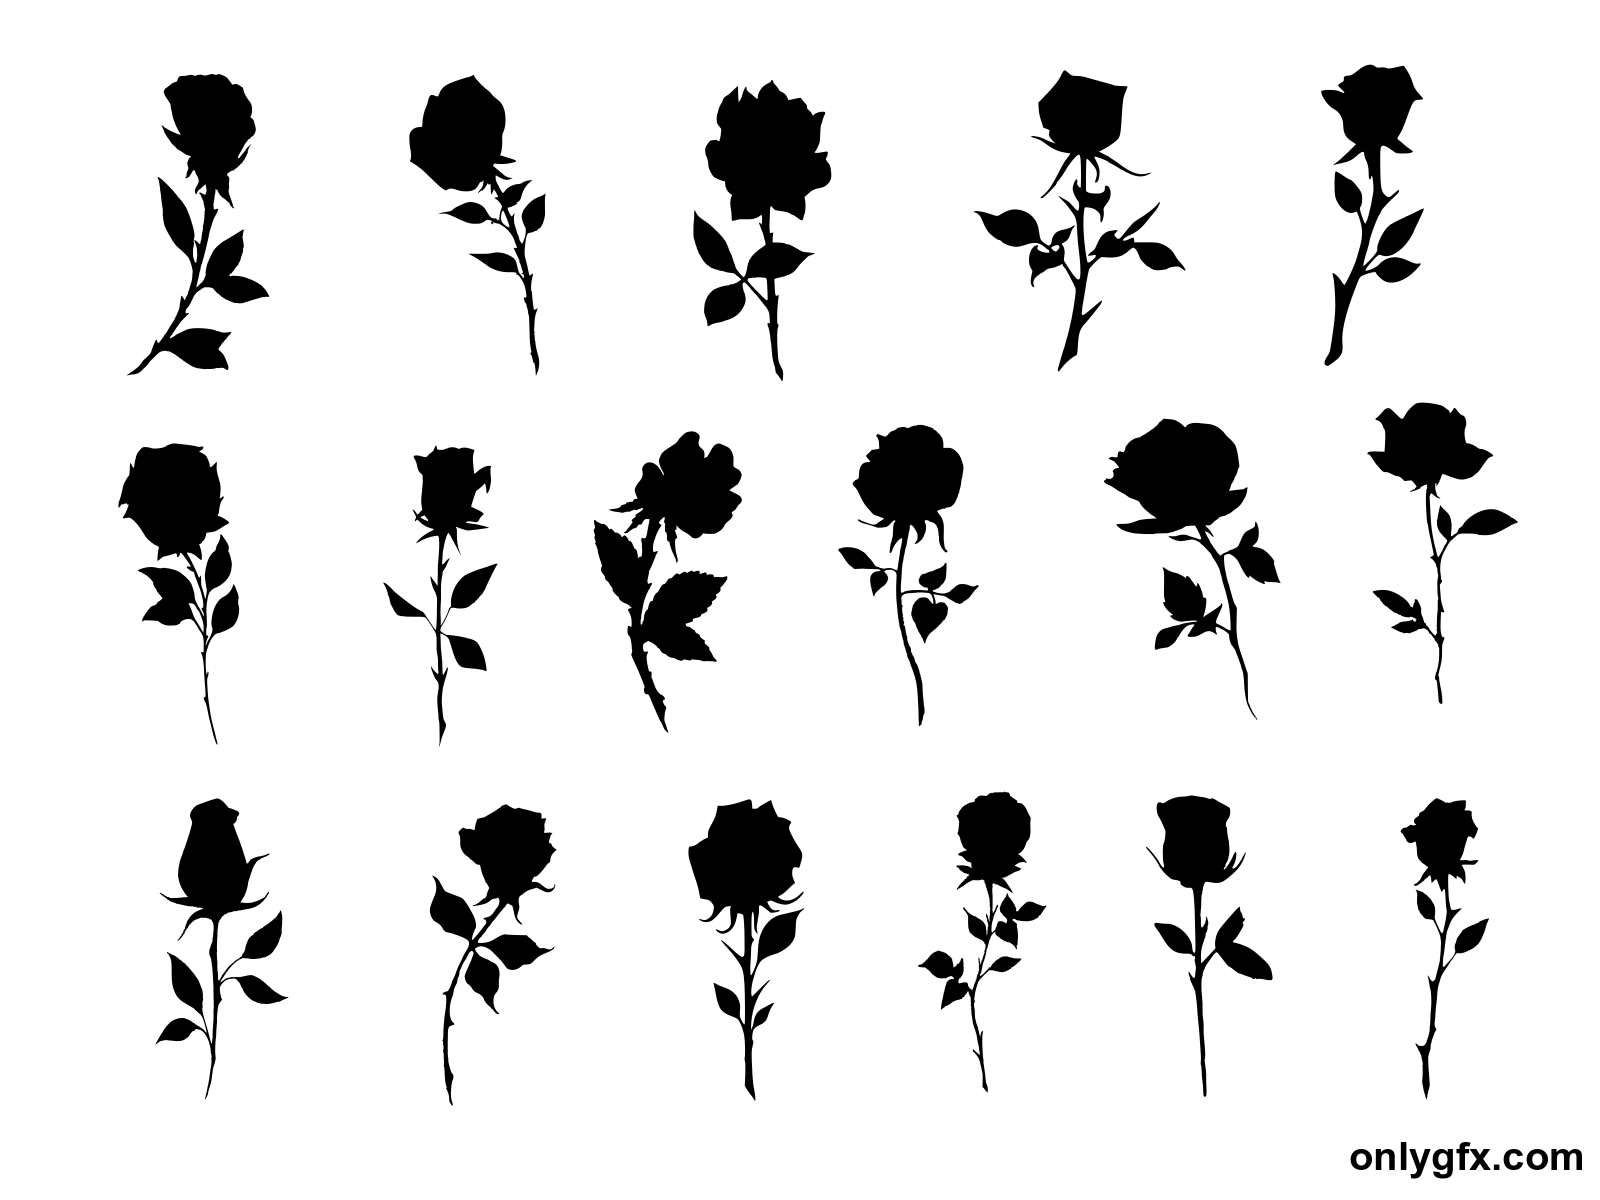 17 Rose Silhouette Png Transparent Onlygfx Com Silhouette Png Silhouette Transparent